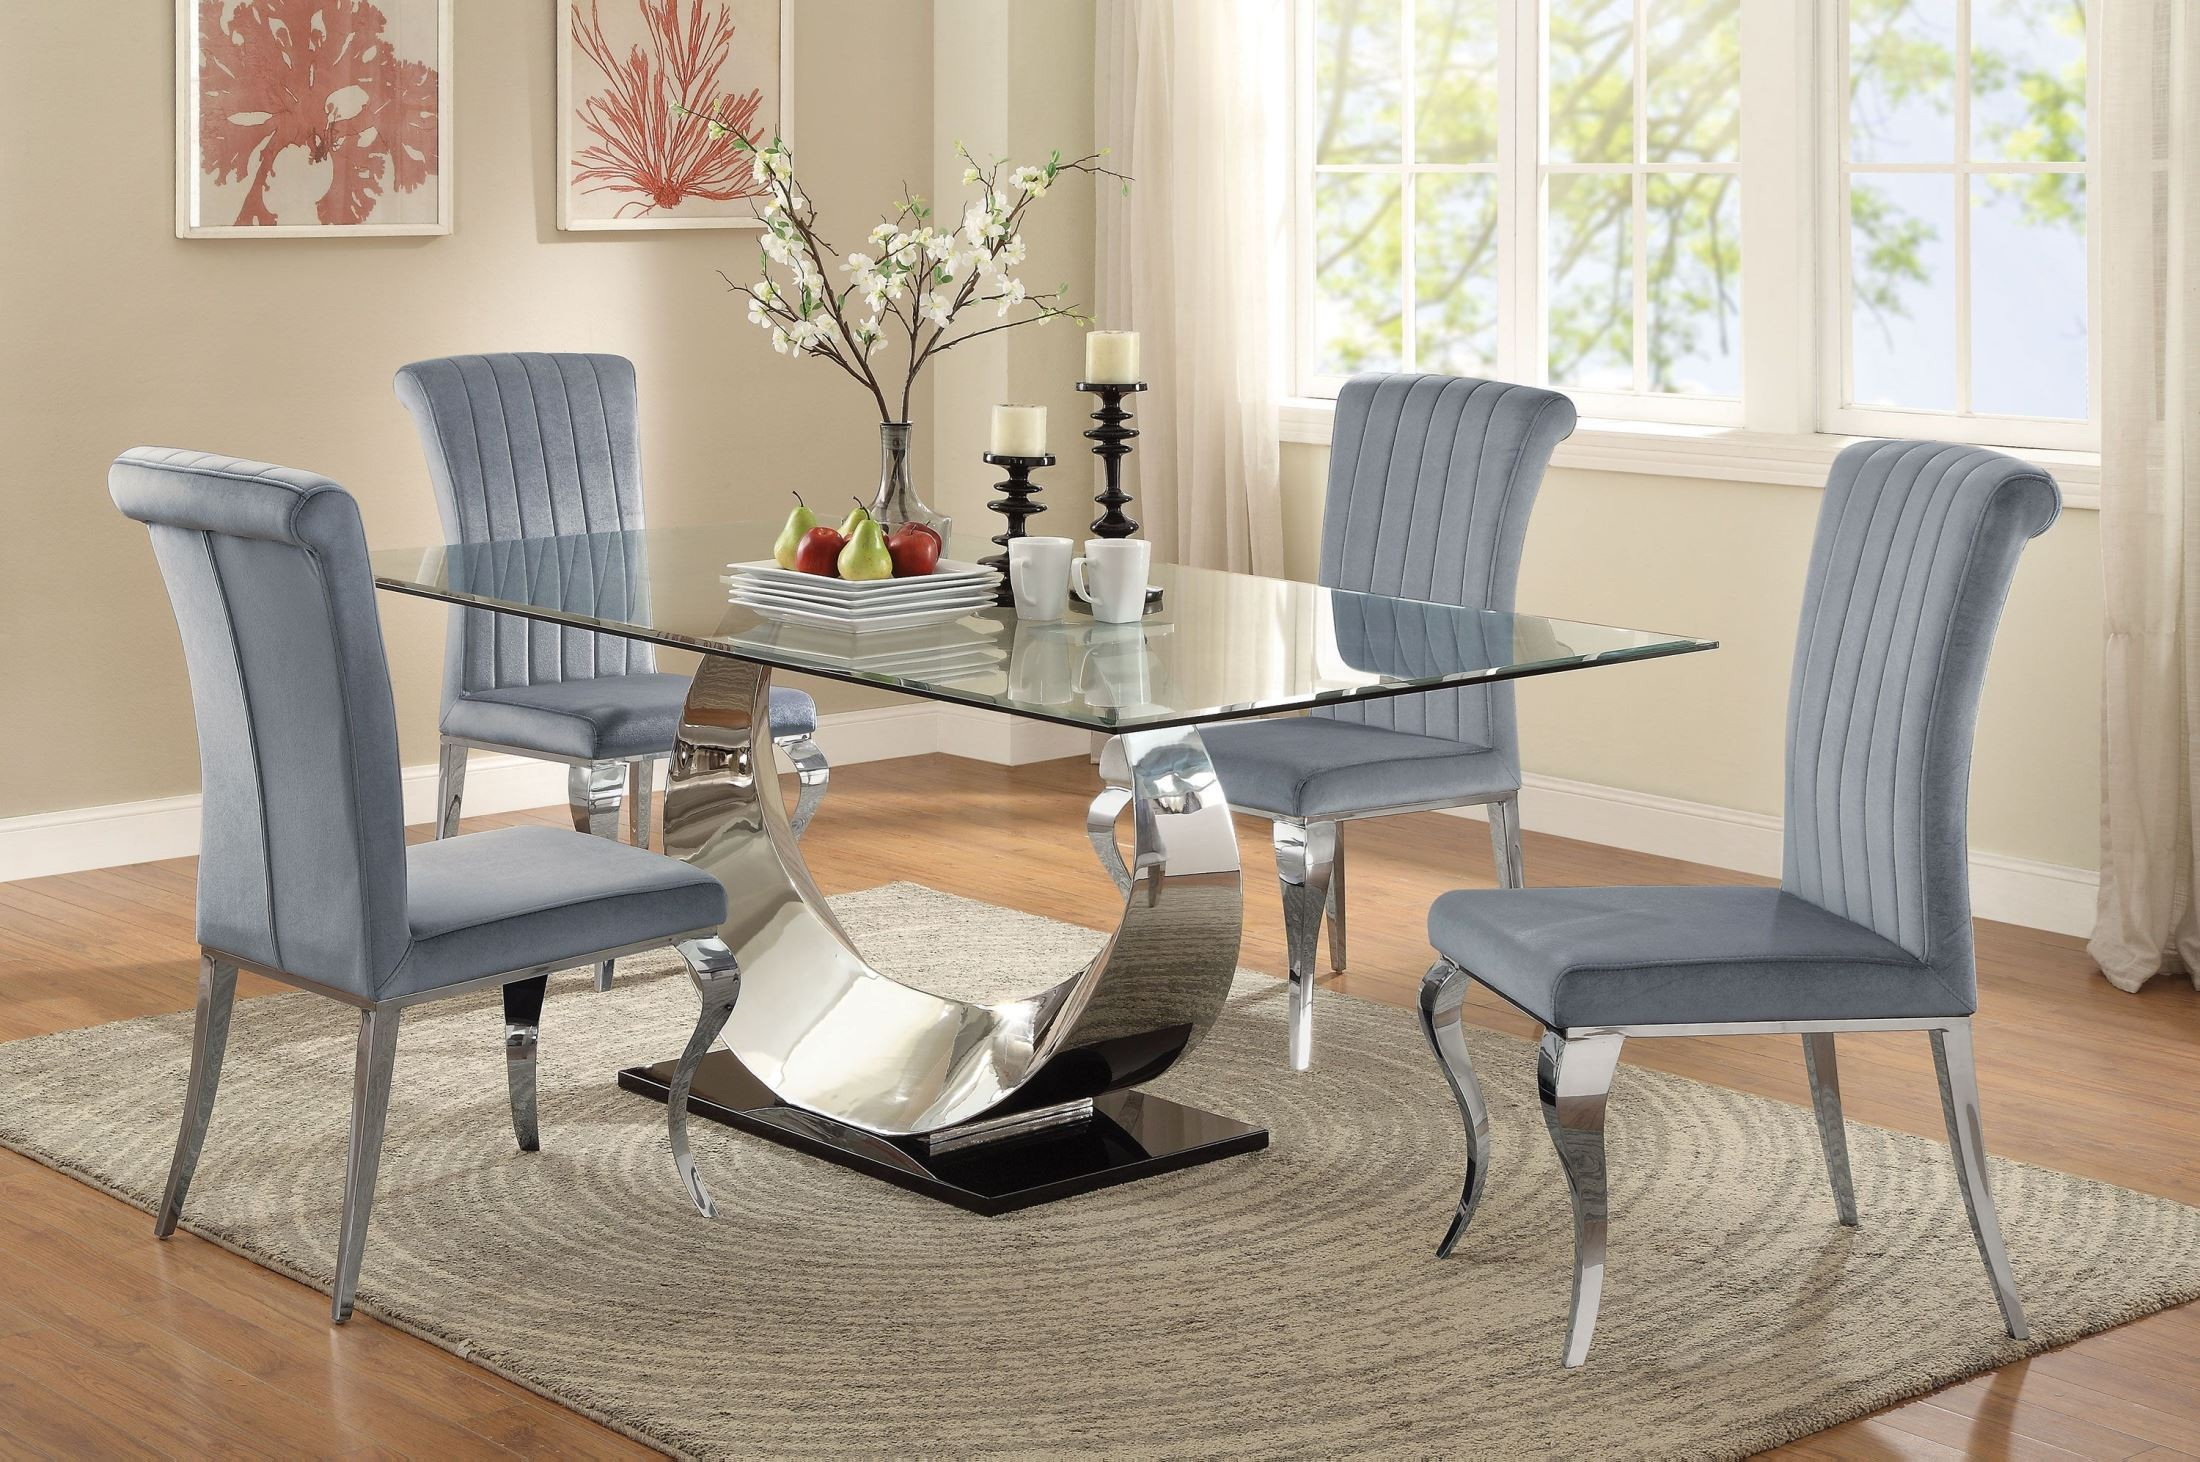 Perfect Manessier Chrome Dining Room Set. Coaster Furniture